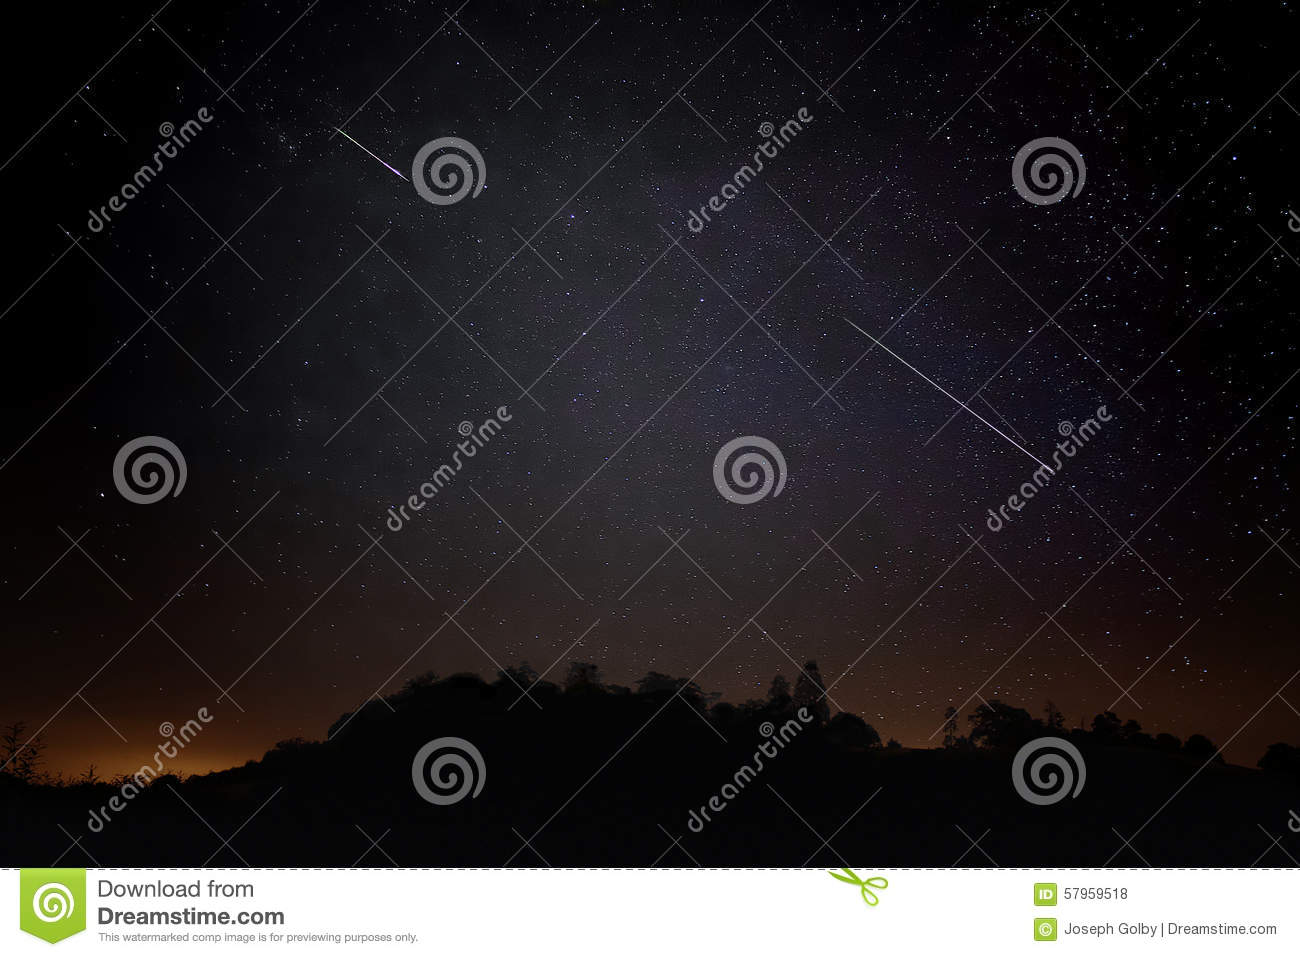 Pair of Meteors. Meteor Shower Night Sky with Landscape Silhouette